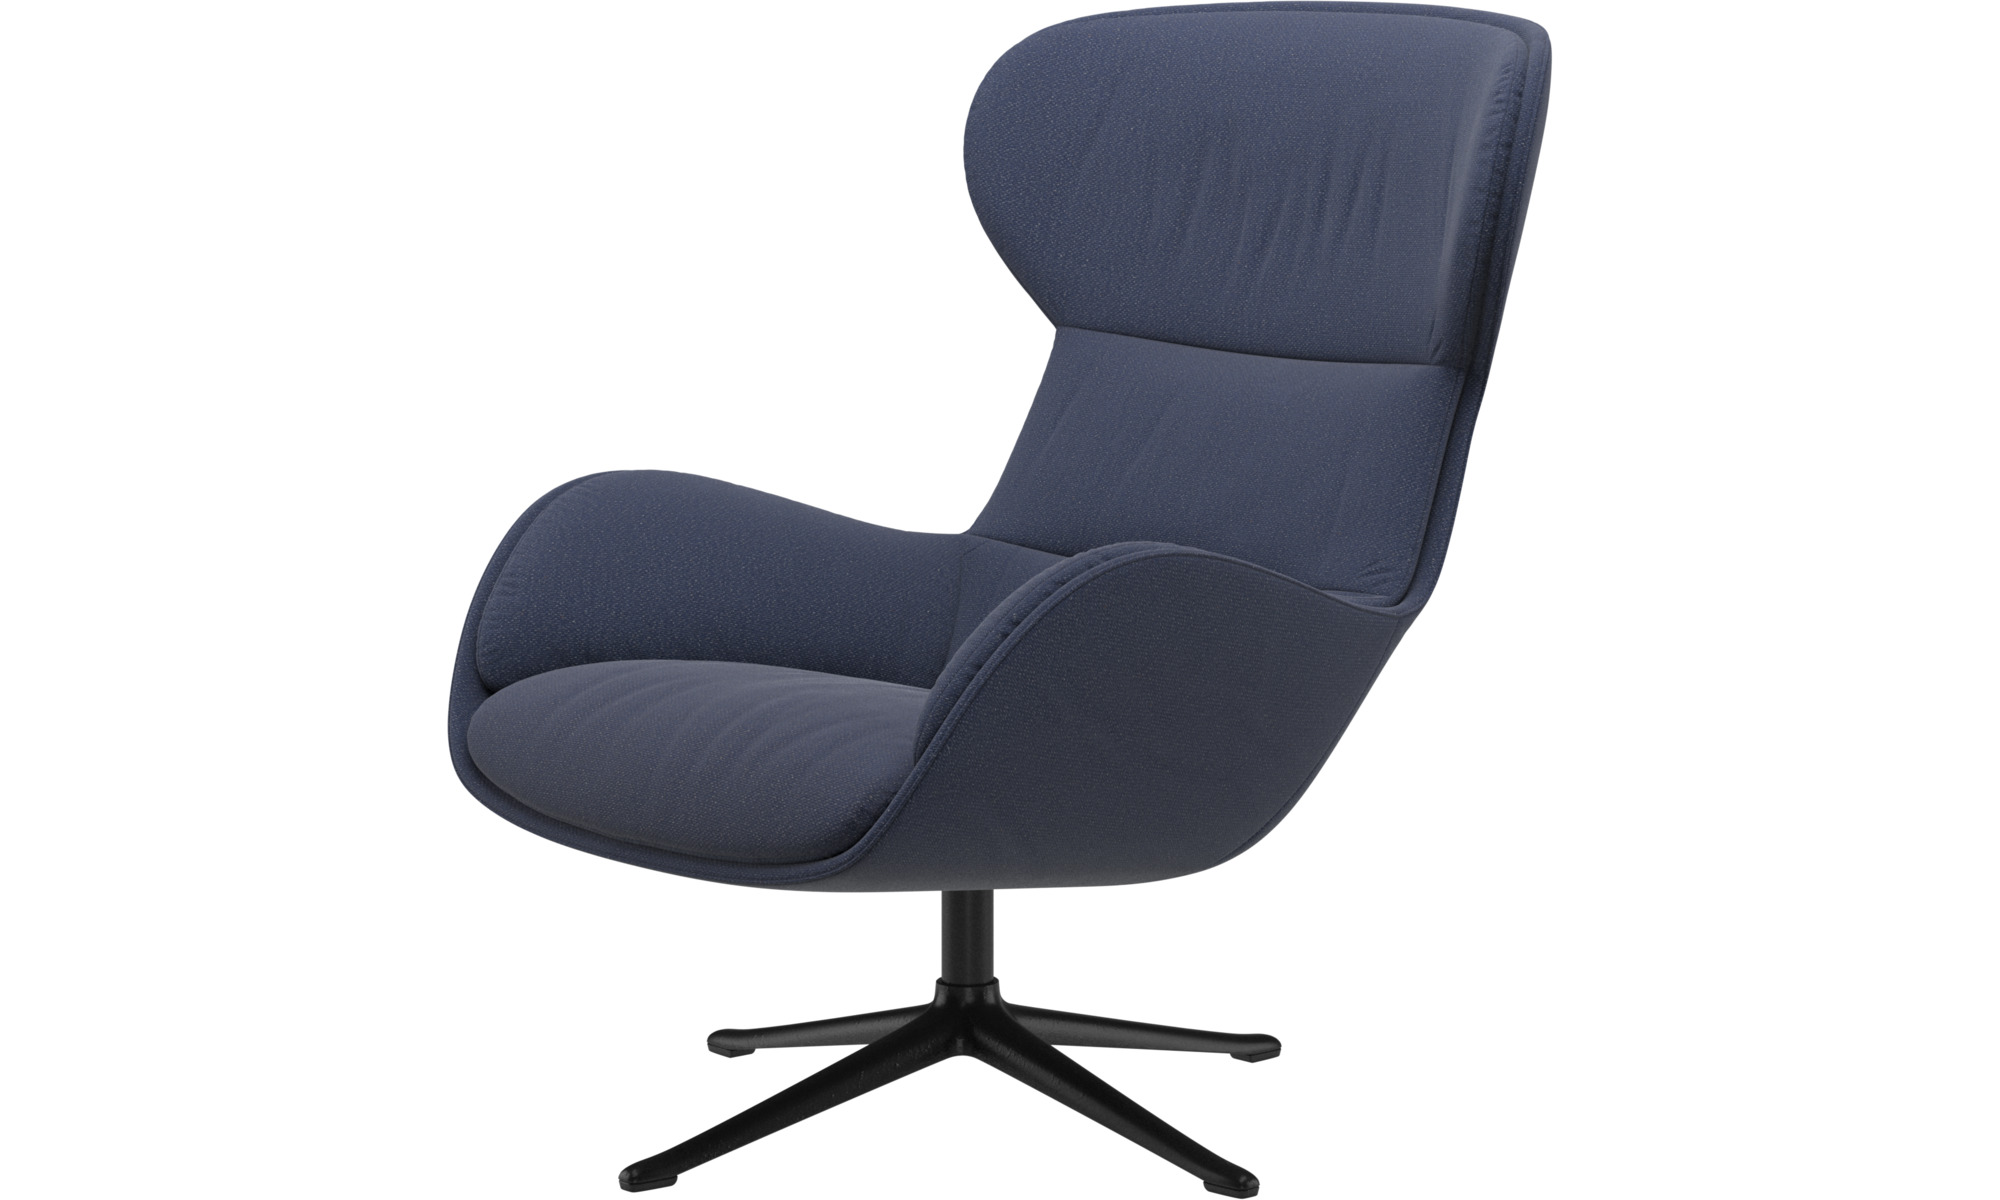 Armchairs - Reno chair with swivel function - Blue - Fabric